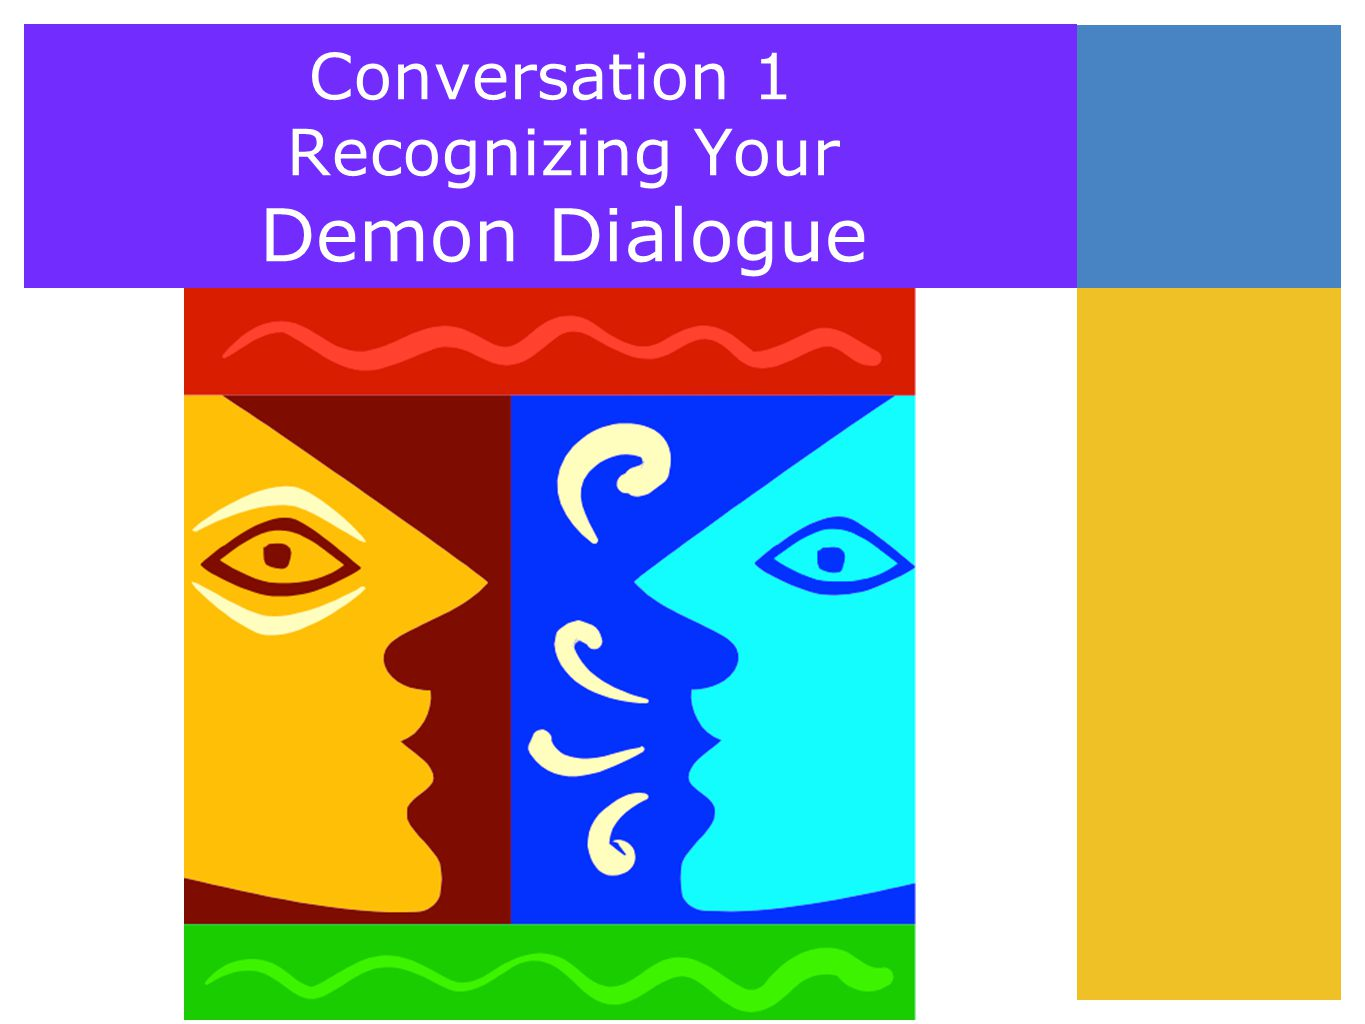 Conversation 1 Recognizing Your Demon Dialogue